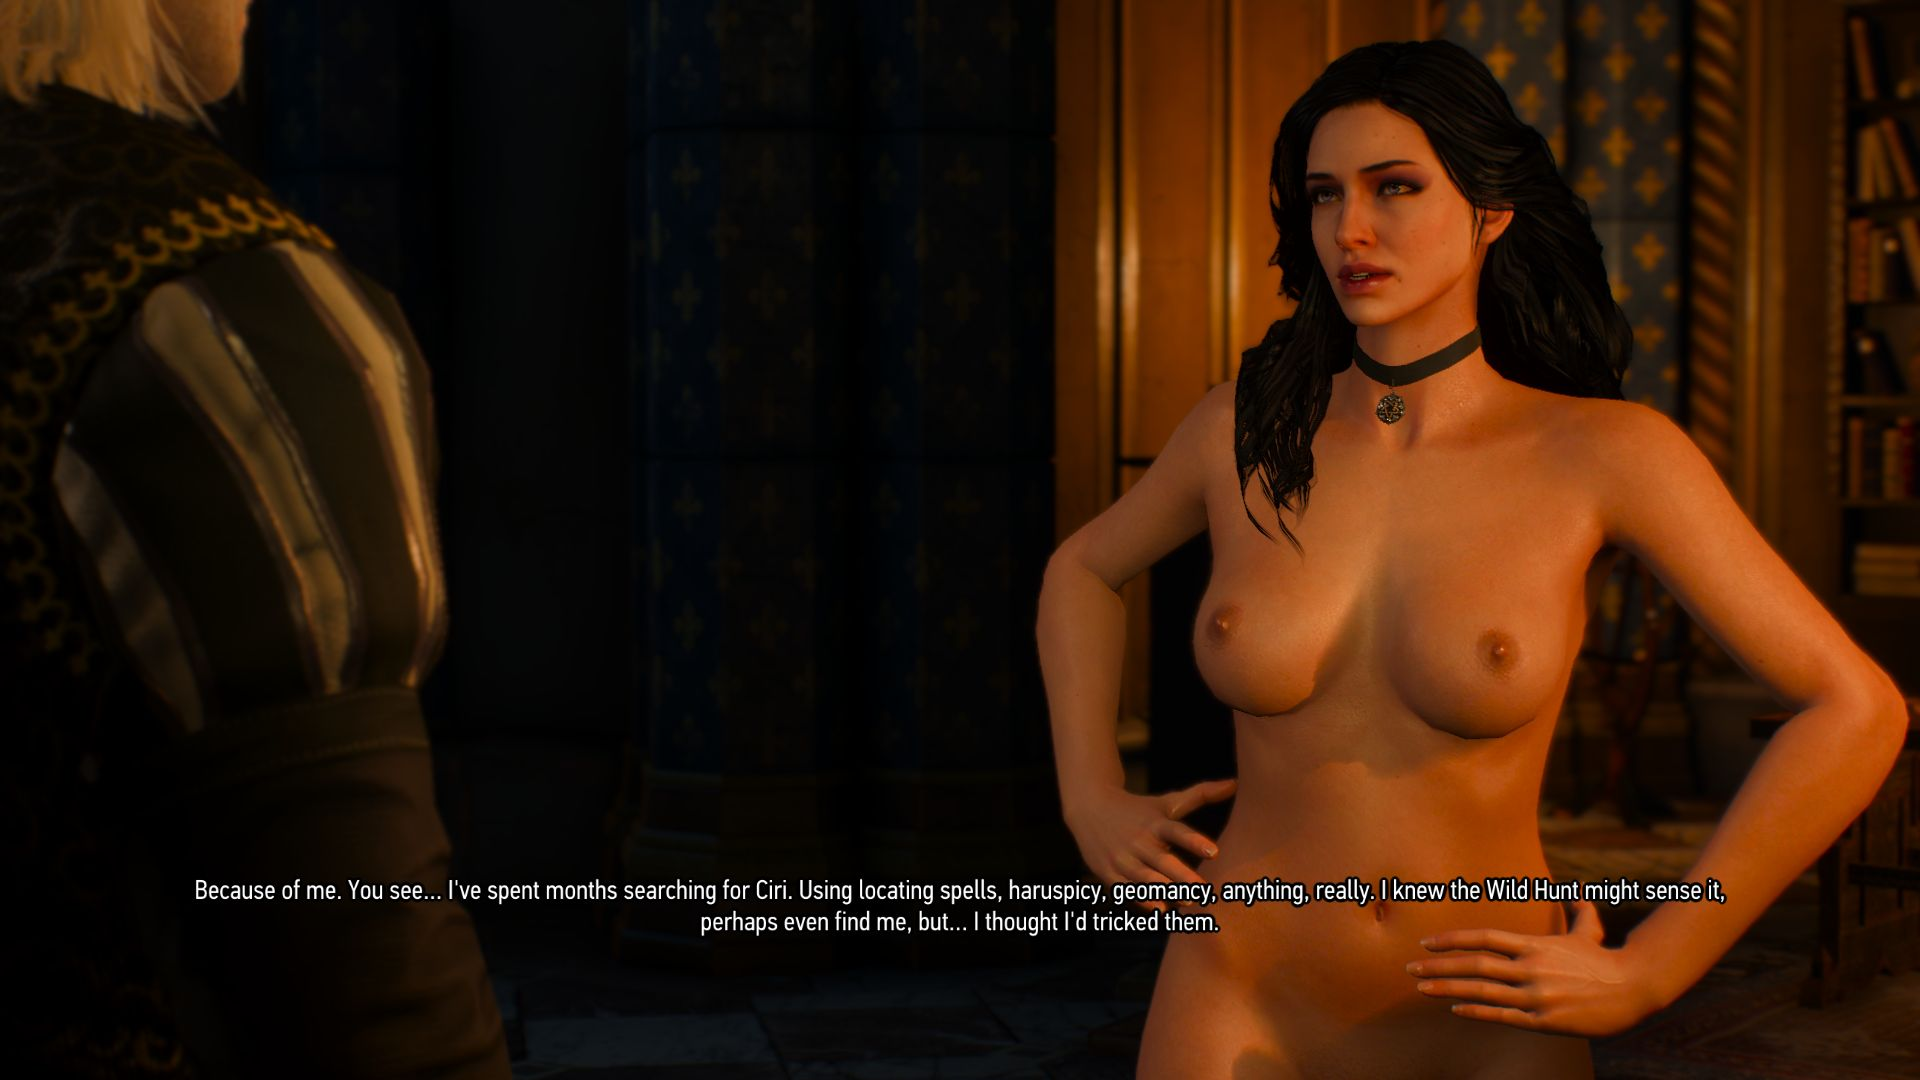 The witcher 3 nude